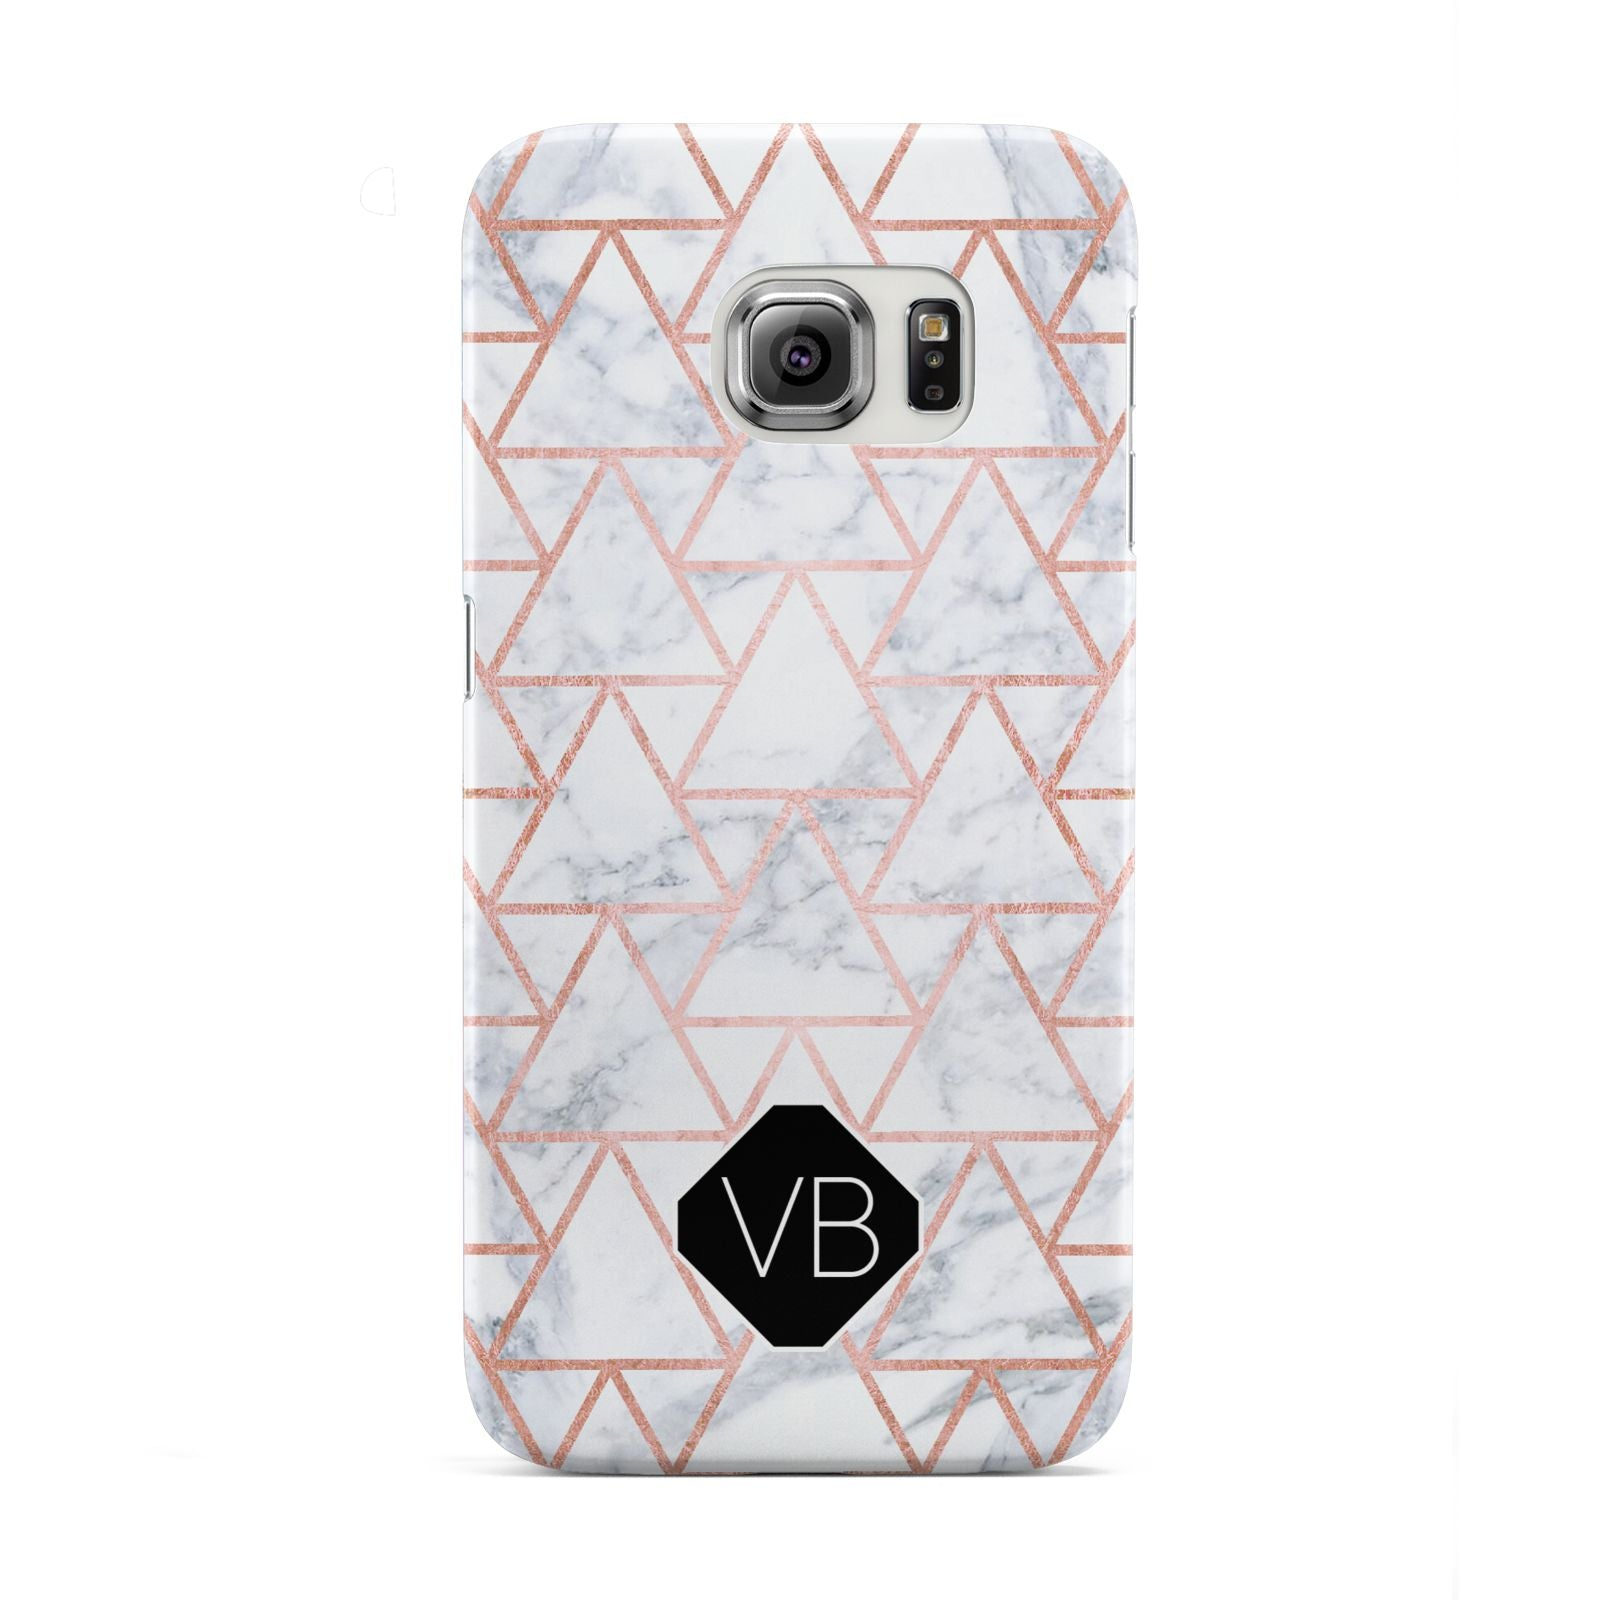 Personalised Rose Gold Grey Marble Hexagon Samsung Galaxy S6 Edge Case